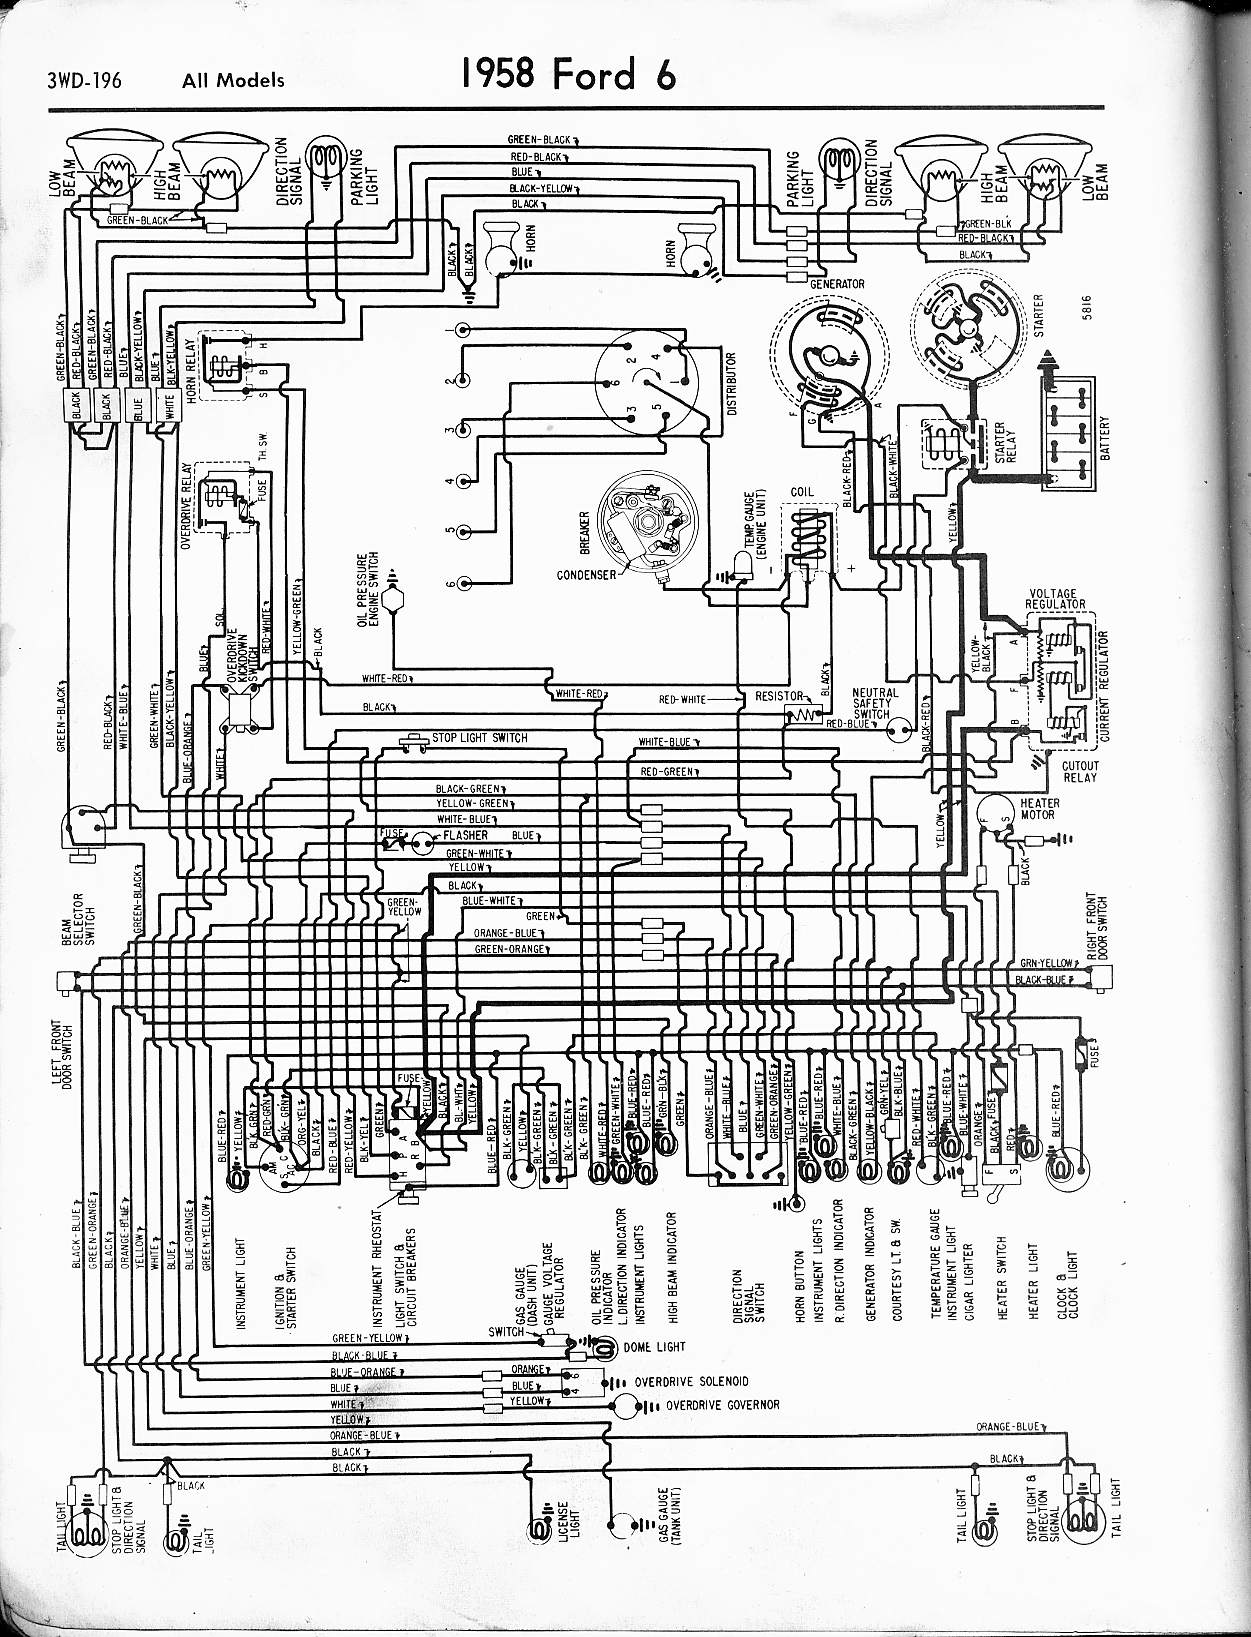 MWire5765 196 57 65 ford wiring diagrams 1964 Ford Fairlane at crackthecode.co